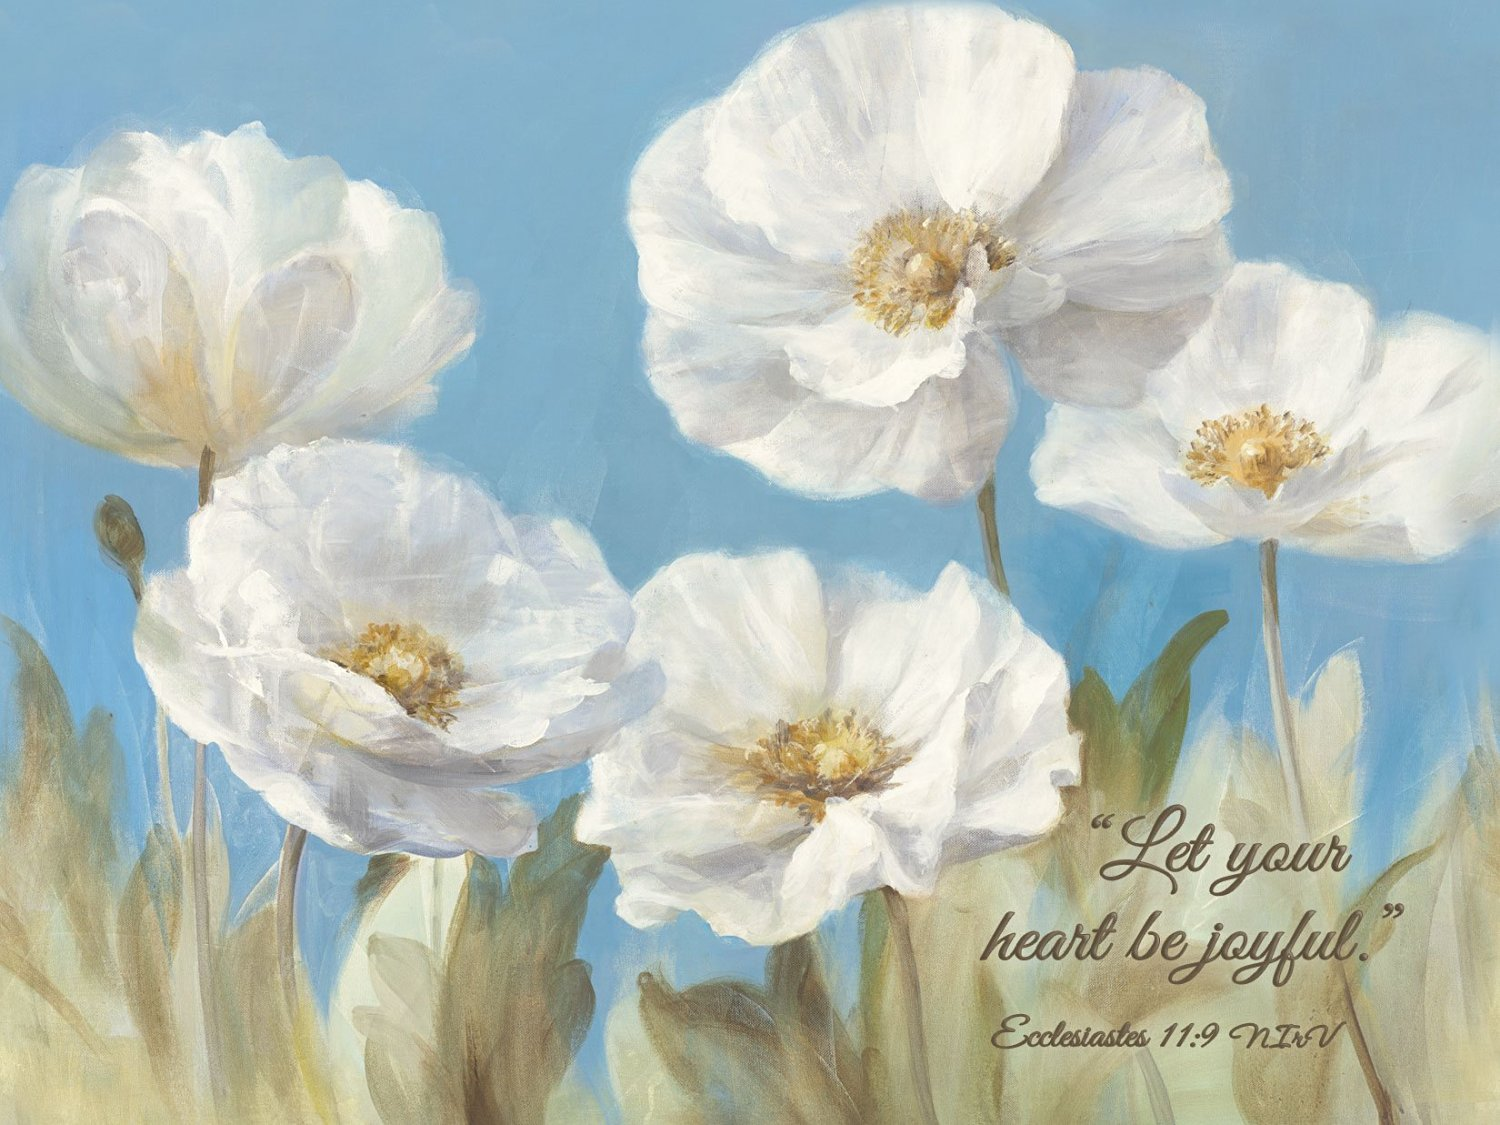 Buy legacy of faith boxed note cards with scripture clothesline legacy of faith deluxe boxed note cards with scripture anemones on blue 13 kristyandbryce Image collections